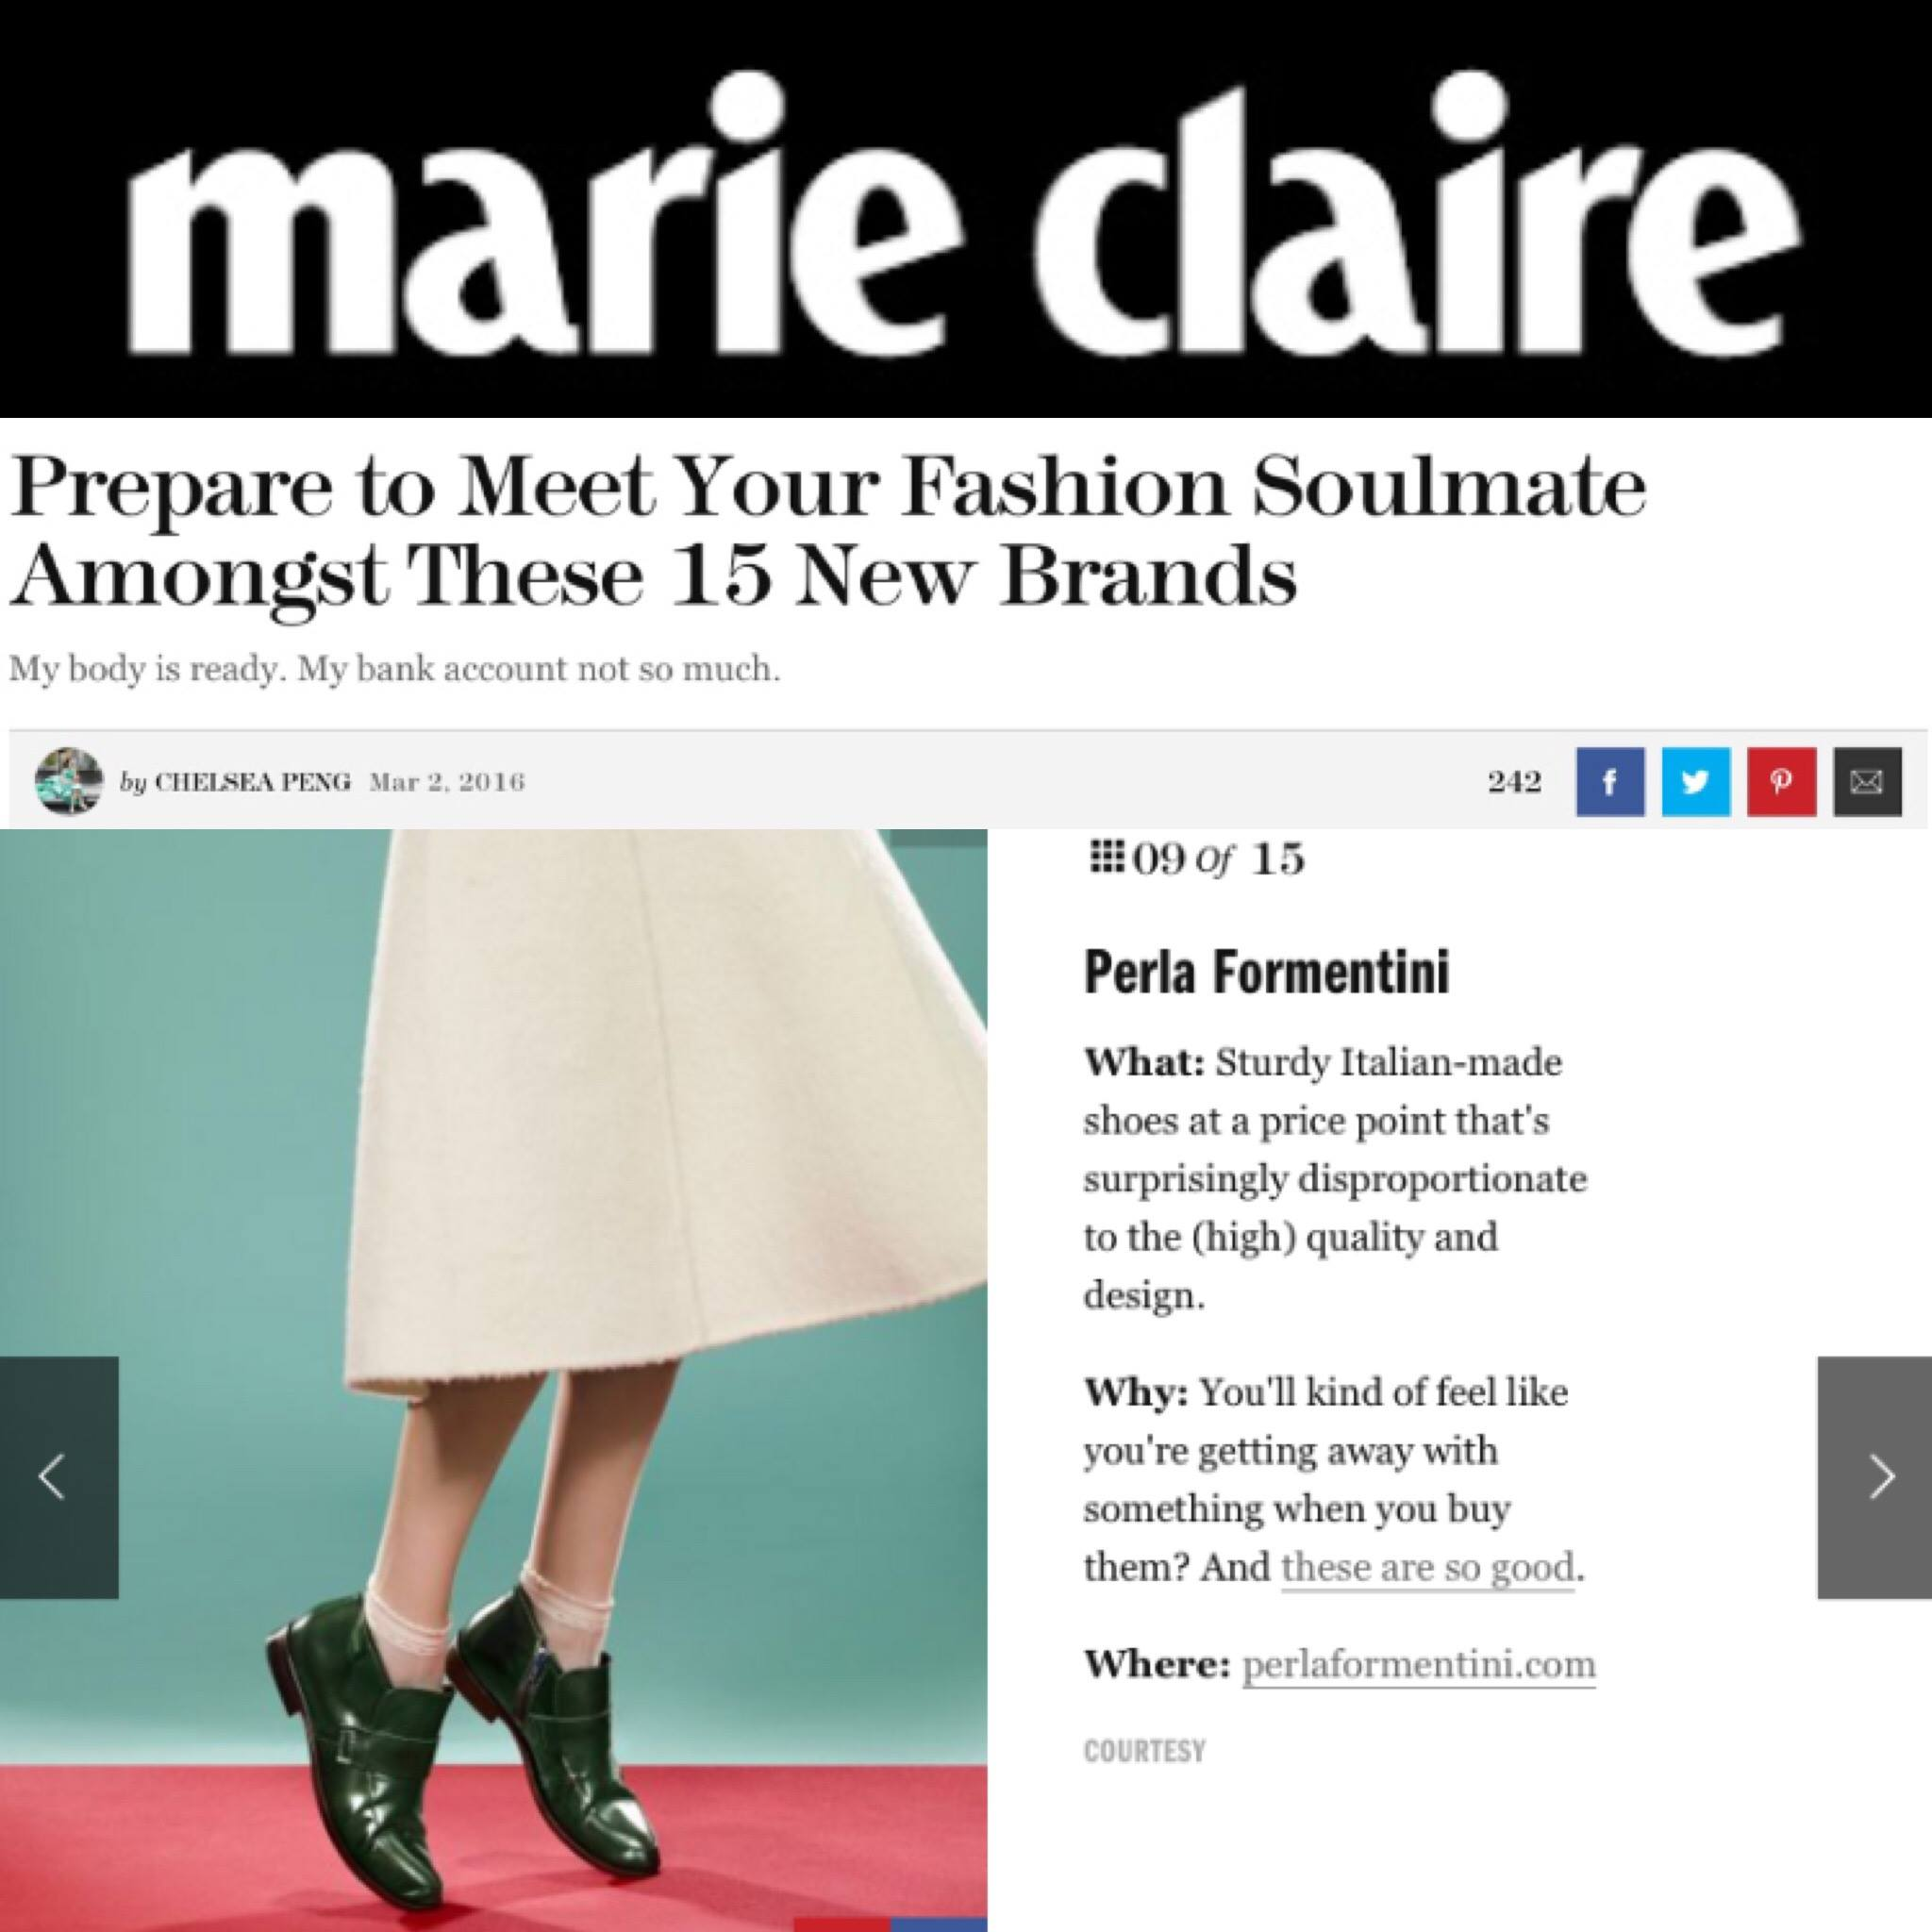 Perla Formentini featured in Marie Claire!